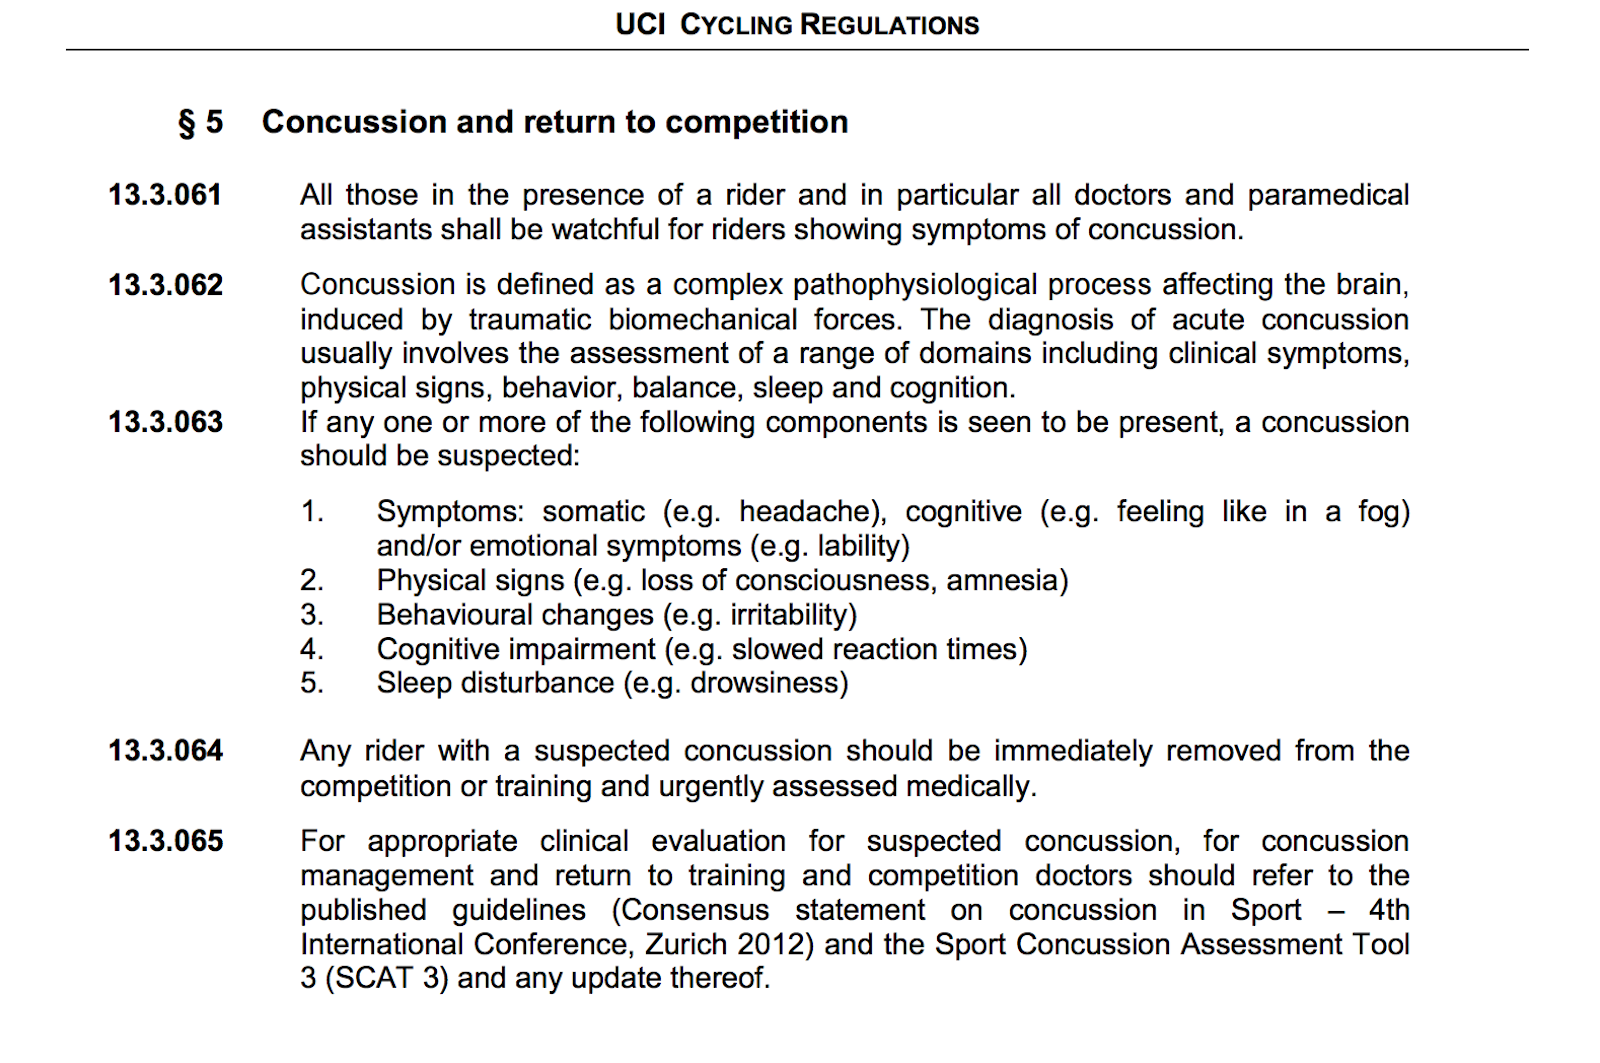 A screenshot from Section 13 of the UCI's 2015 Cycling Regulations, focusing on concussion and return to competition.